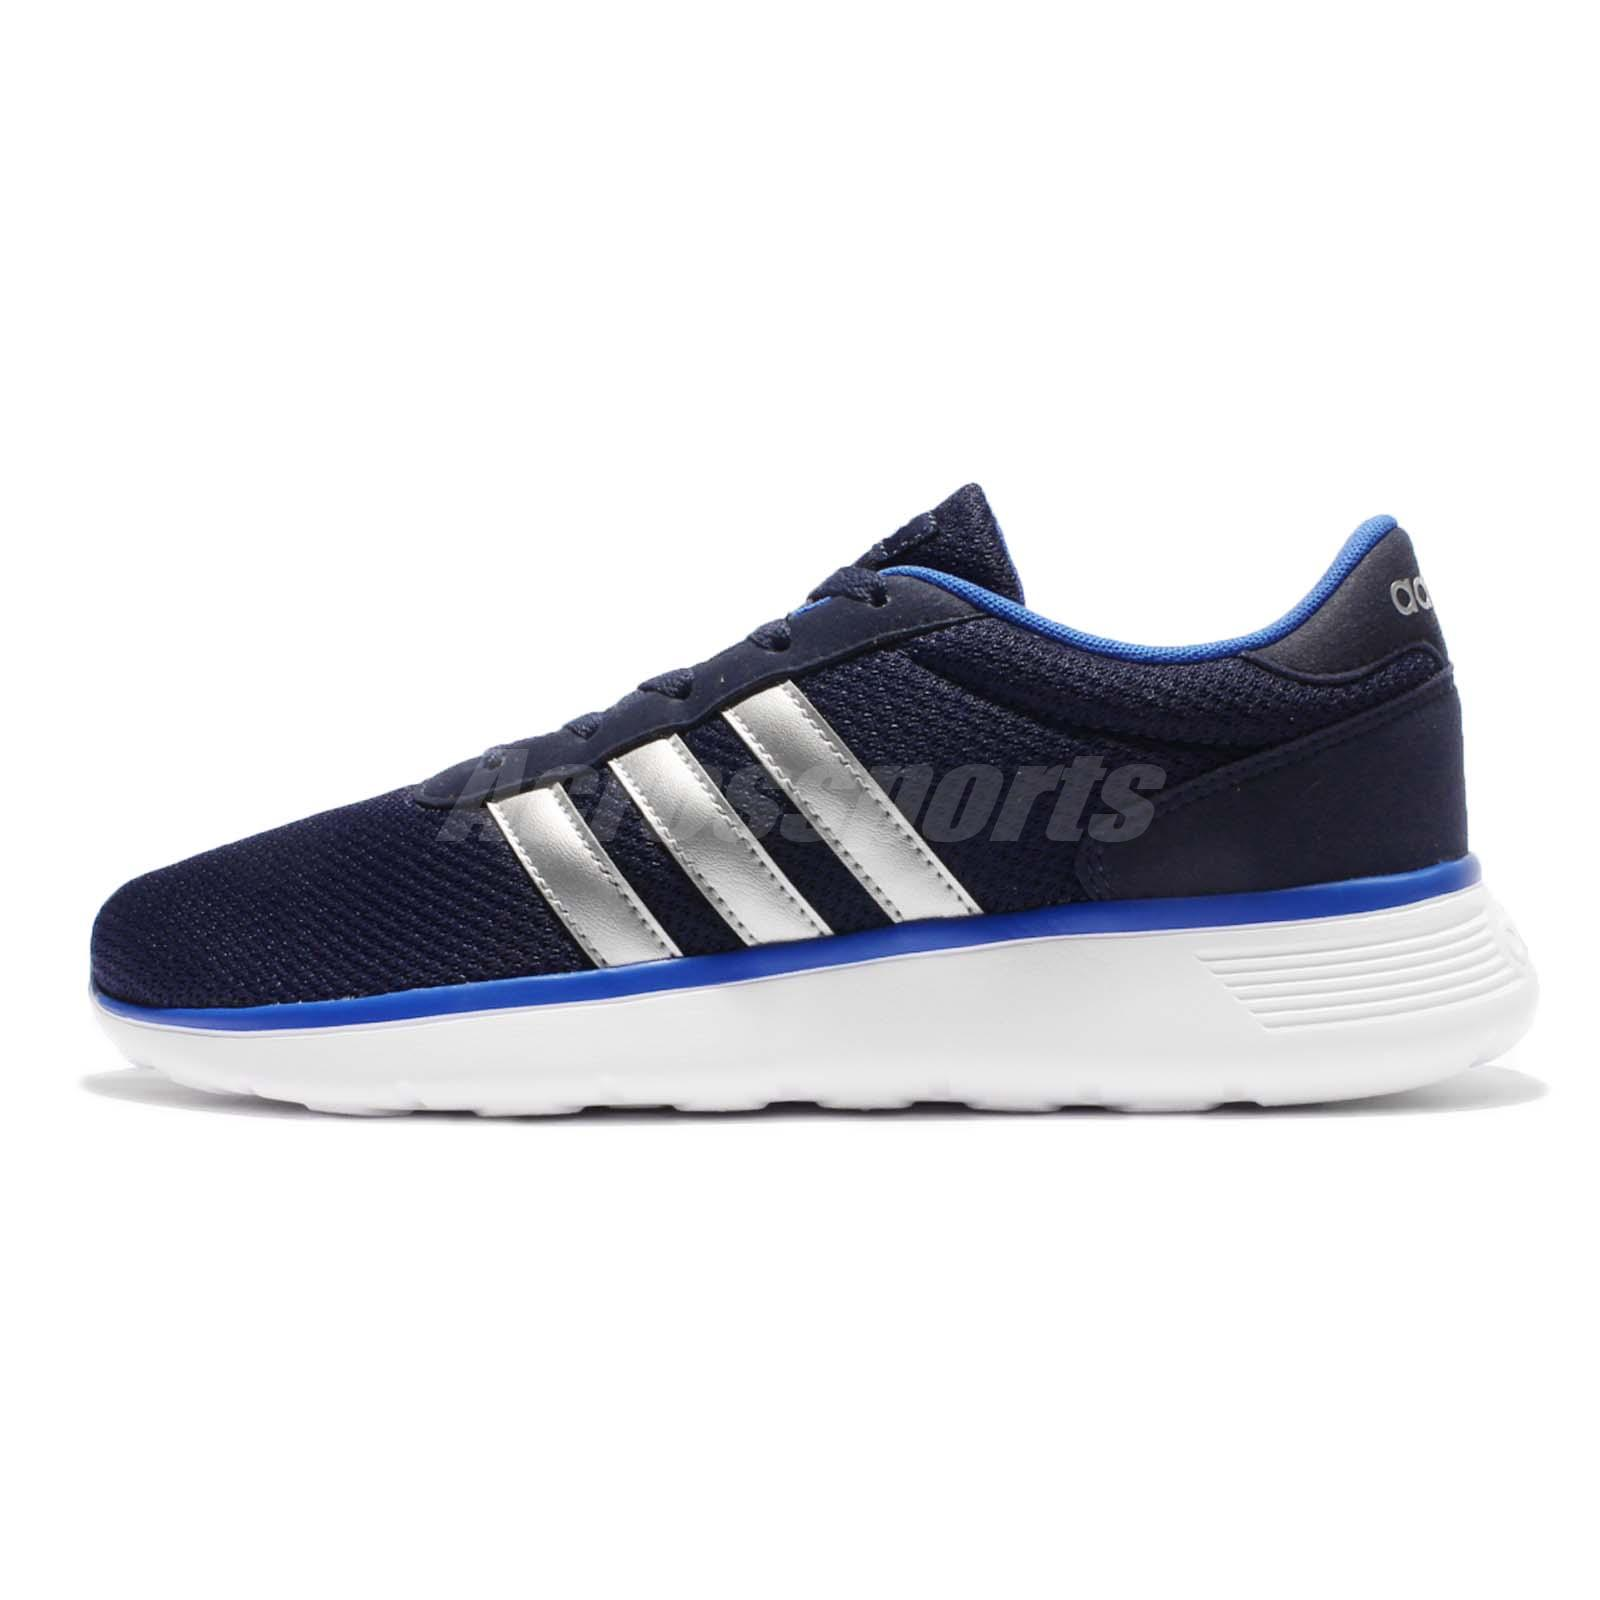 adidas neo label lite racer black silver blue men running. Black Bedroom Furniture Sets. Home Design Ideas